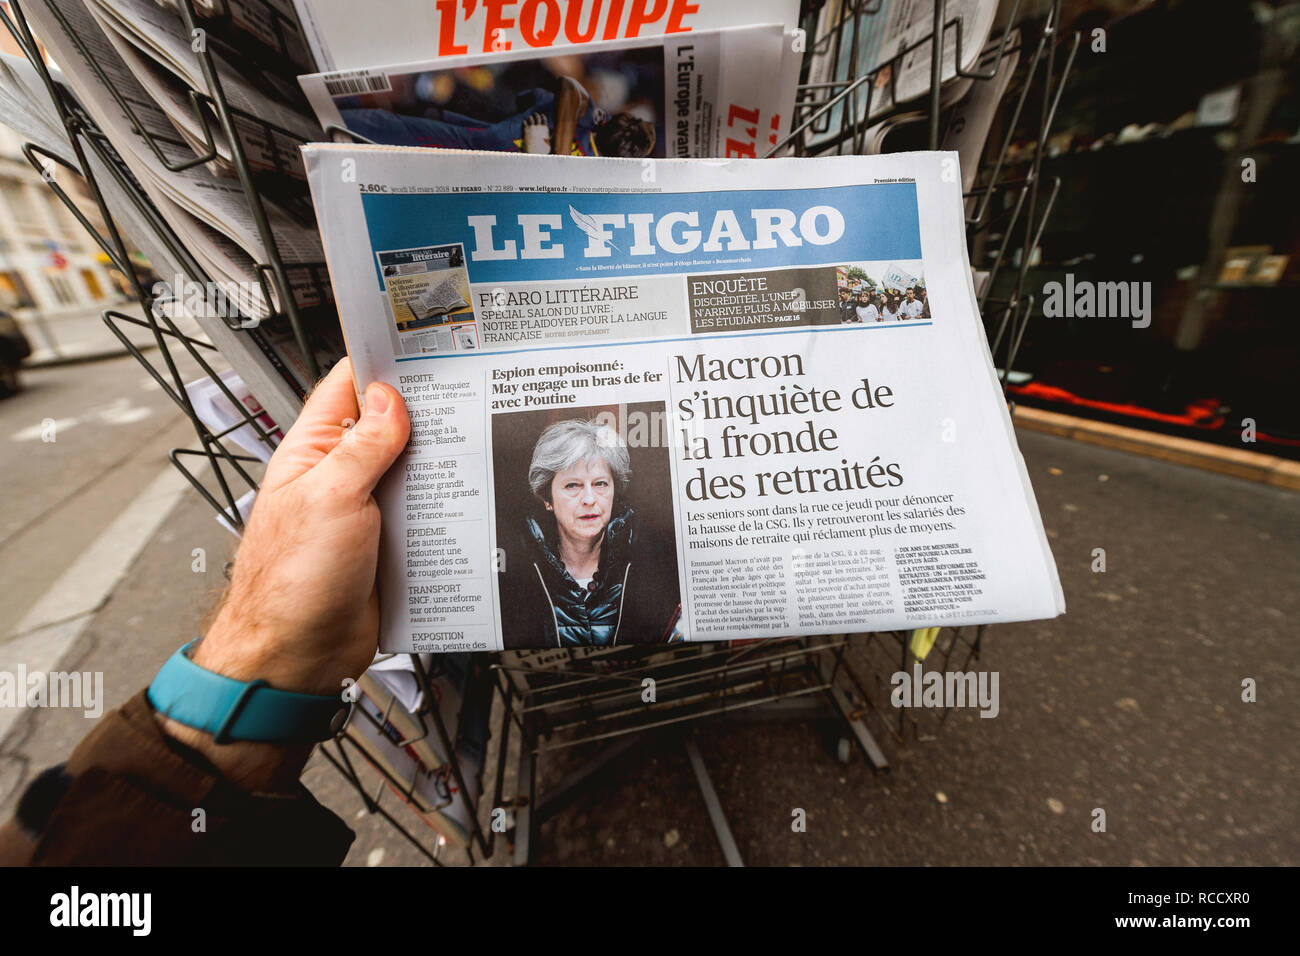 Tabloid Newspaper Cover Page Stock Photos Tabloid